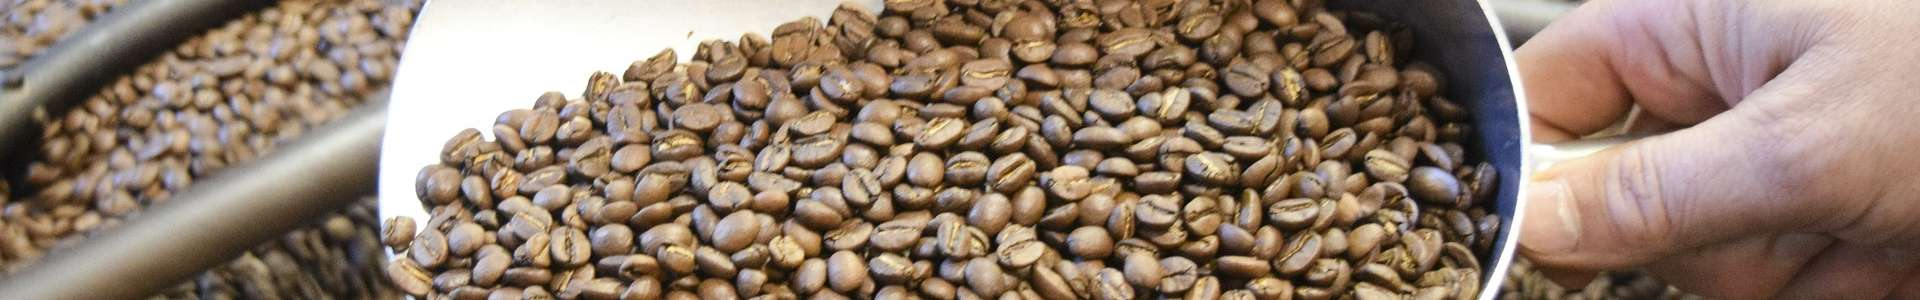 Specialty Coffee vs. Industrial Coffee